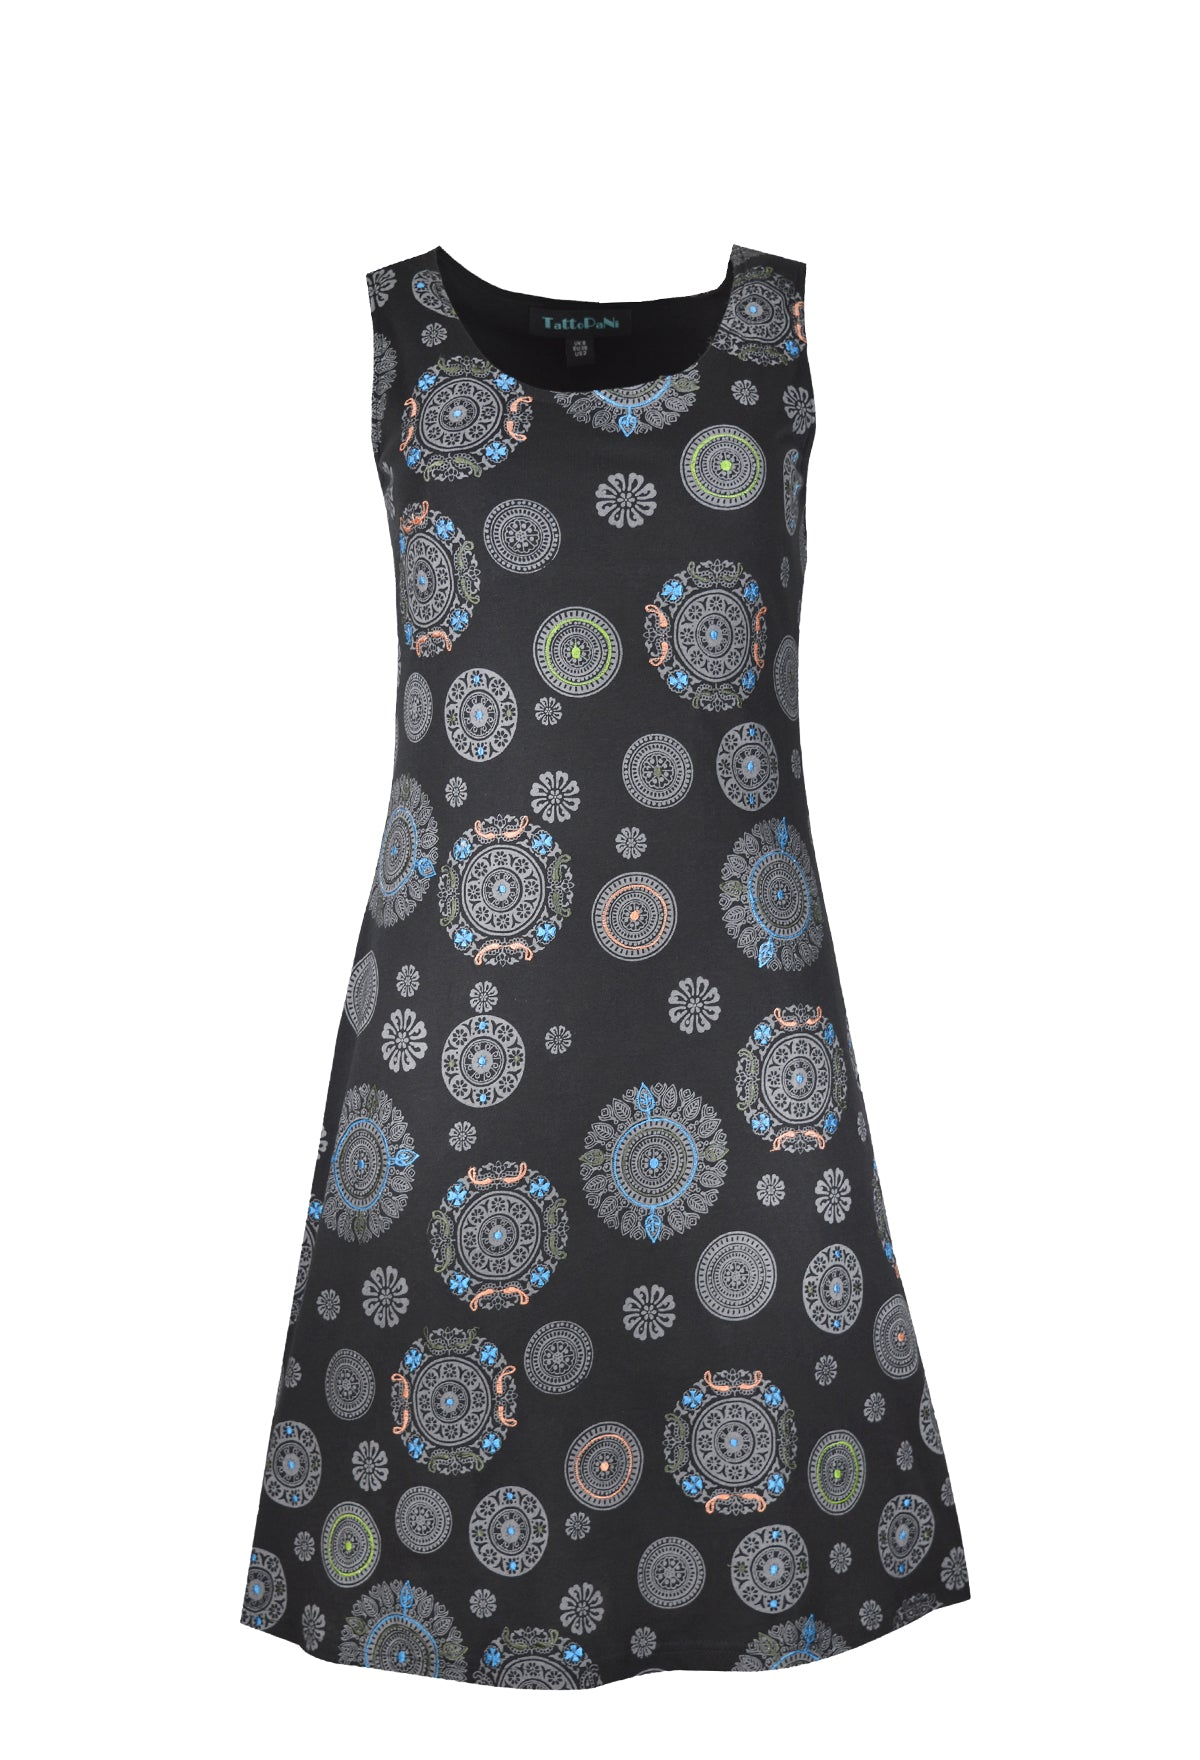 Ladies sleeveless dress with full chakra print and embroidery. - Craze Trade Limited